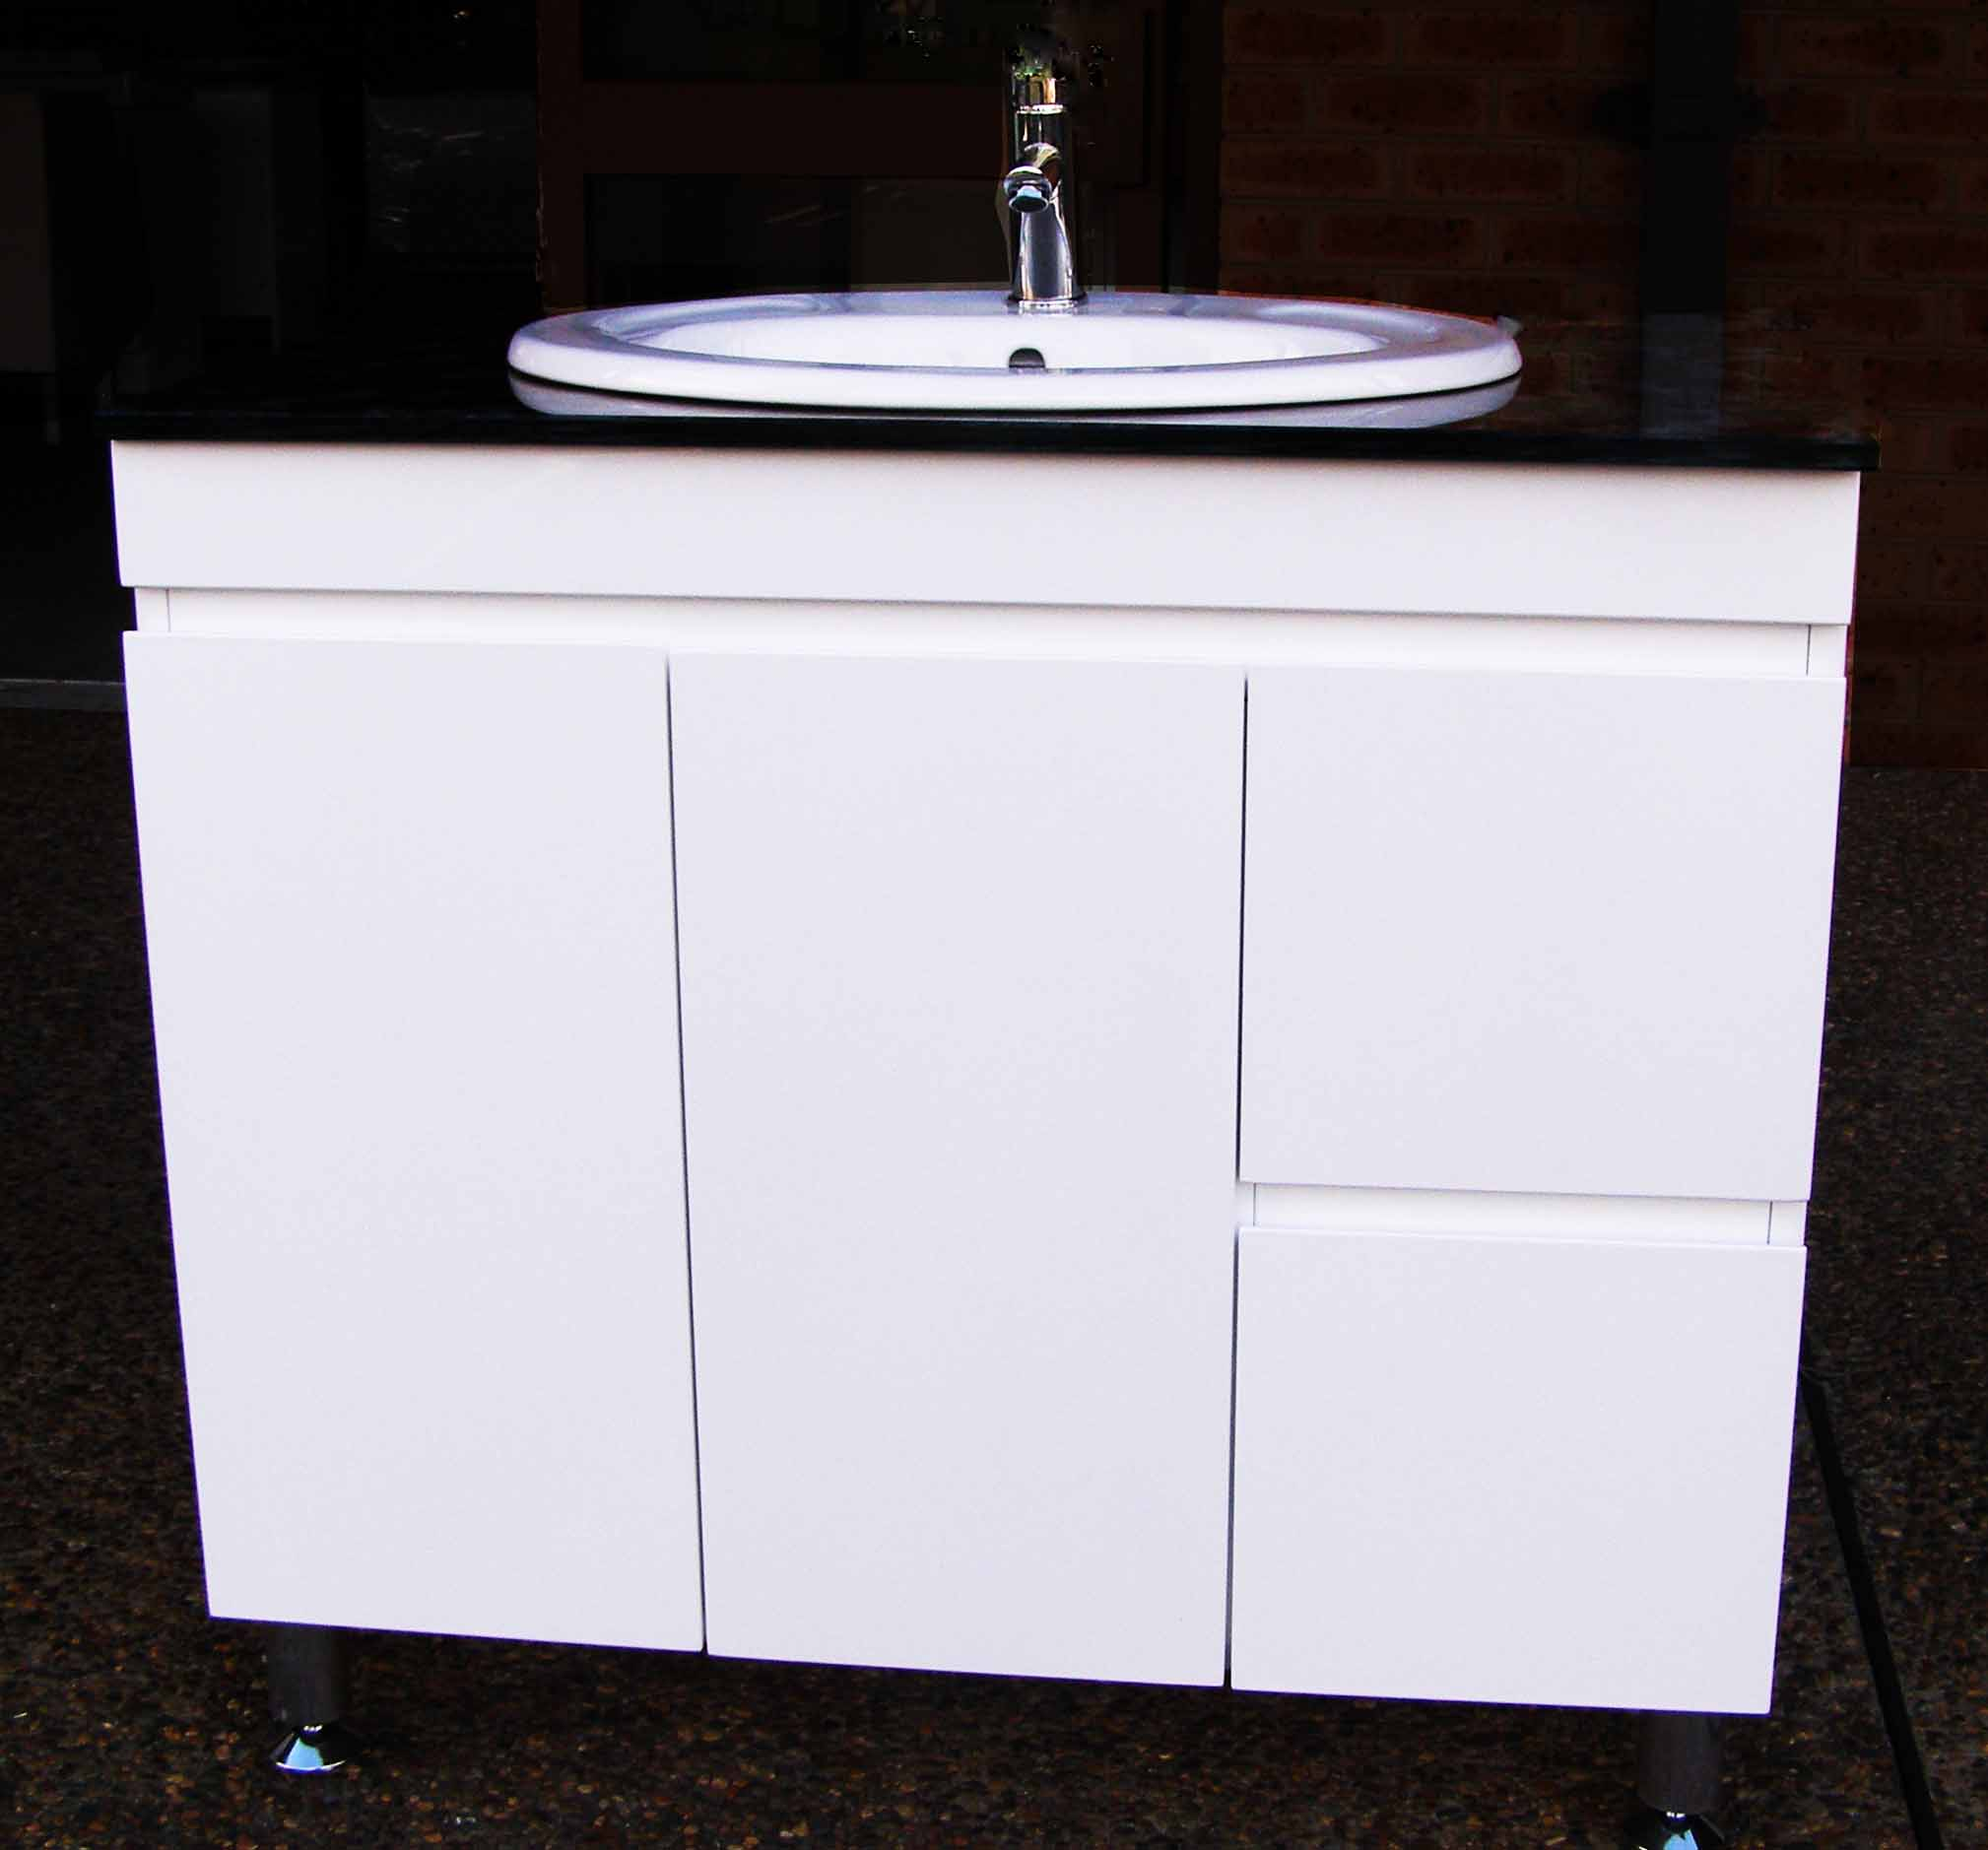 Euro Fwpr900sdr High Gloss Vanity With Stone Top And Oval